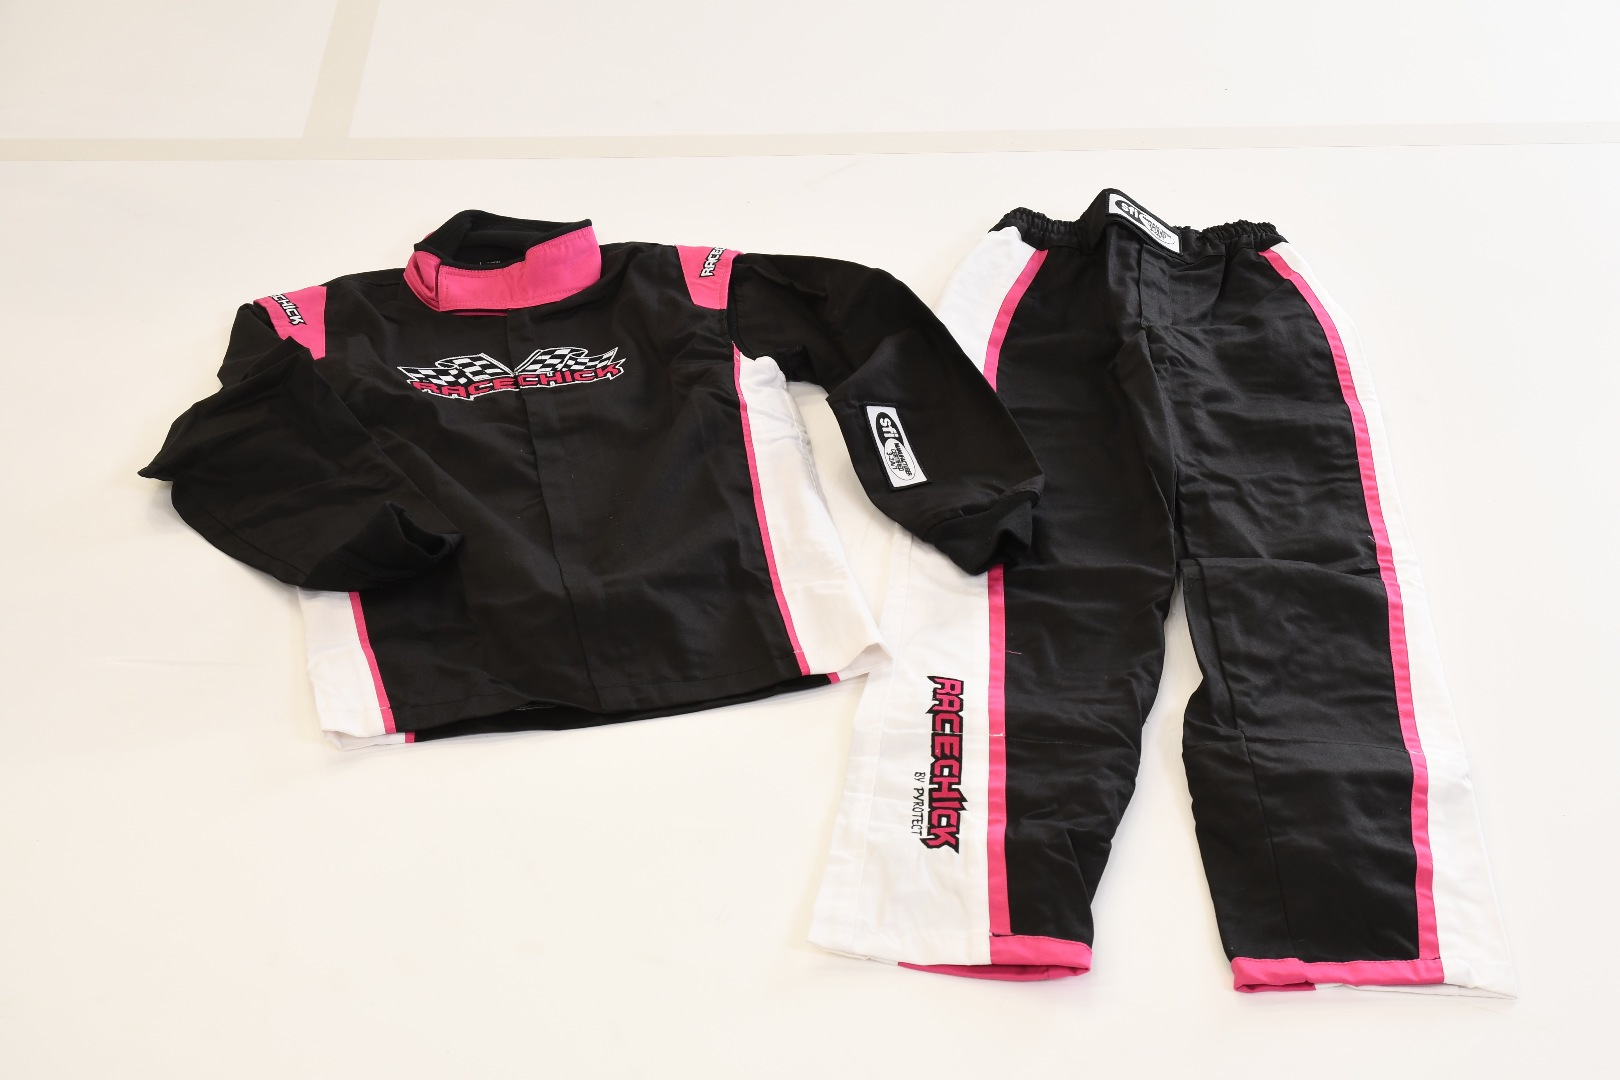 Racechick 'Fierce' Women's Race Suit, Racechick